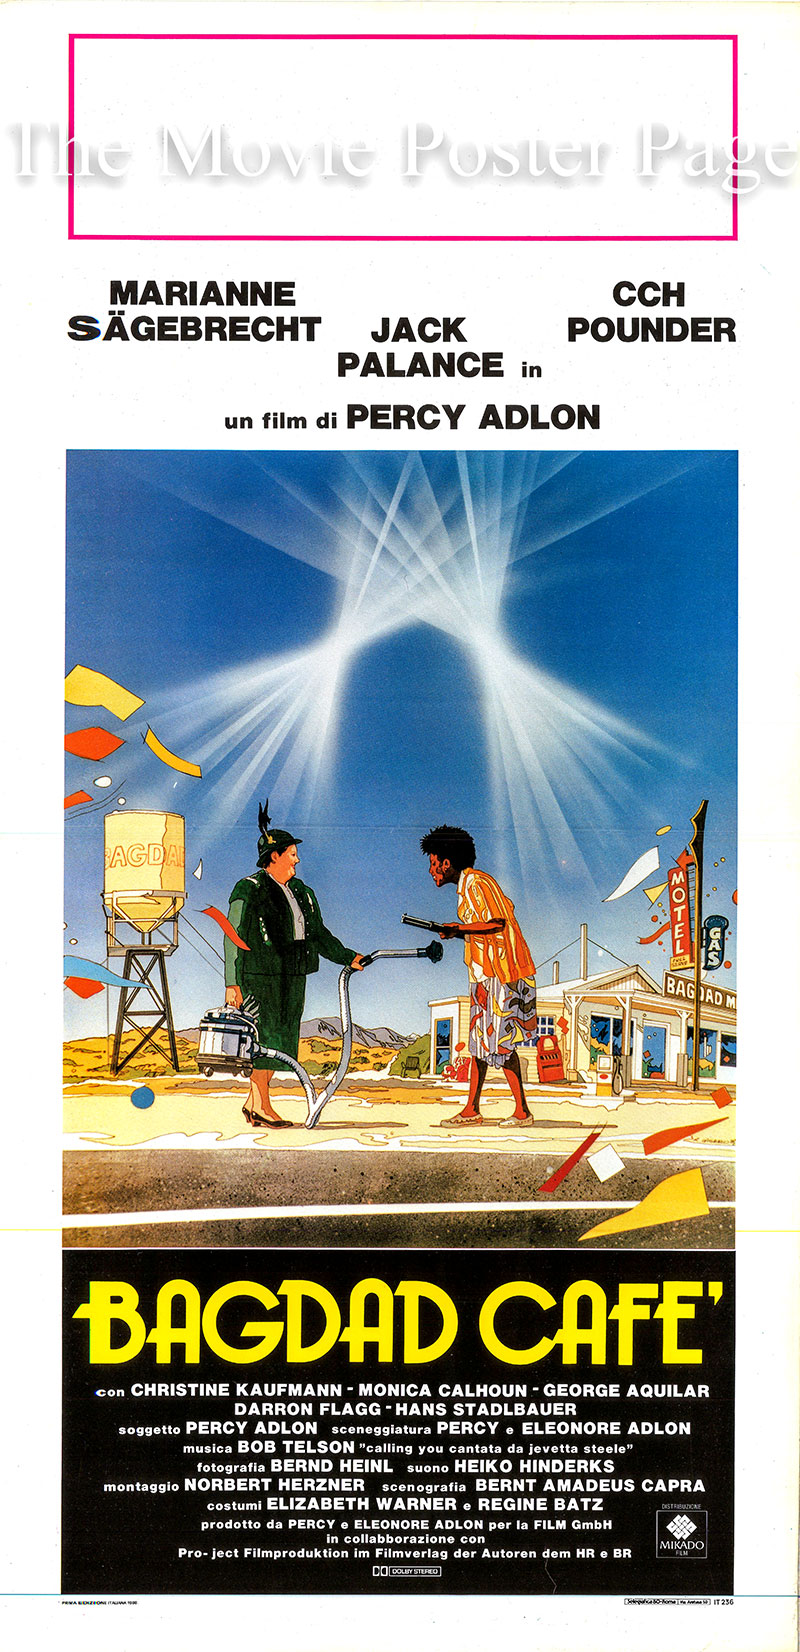 Pictured is an Italian locandina poster for the 1987 Percy Adlon film <i>Bagdad Cafe</i> starring Jack Palance as Rudi Cox.